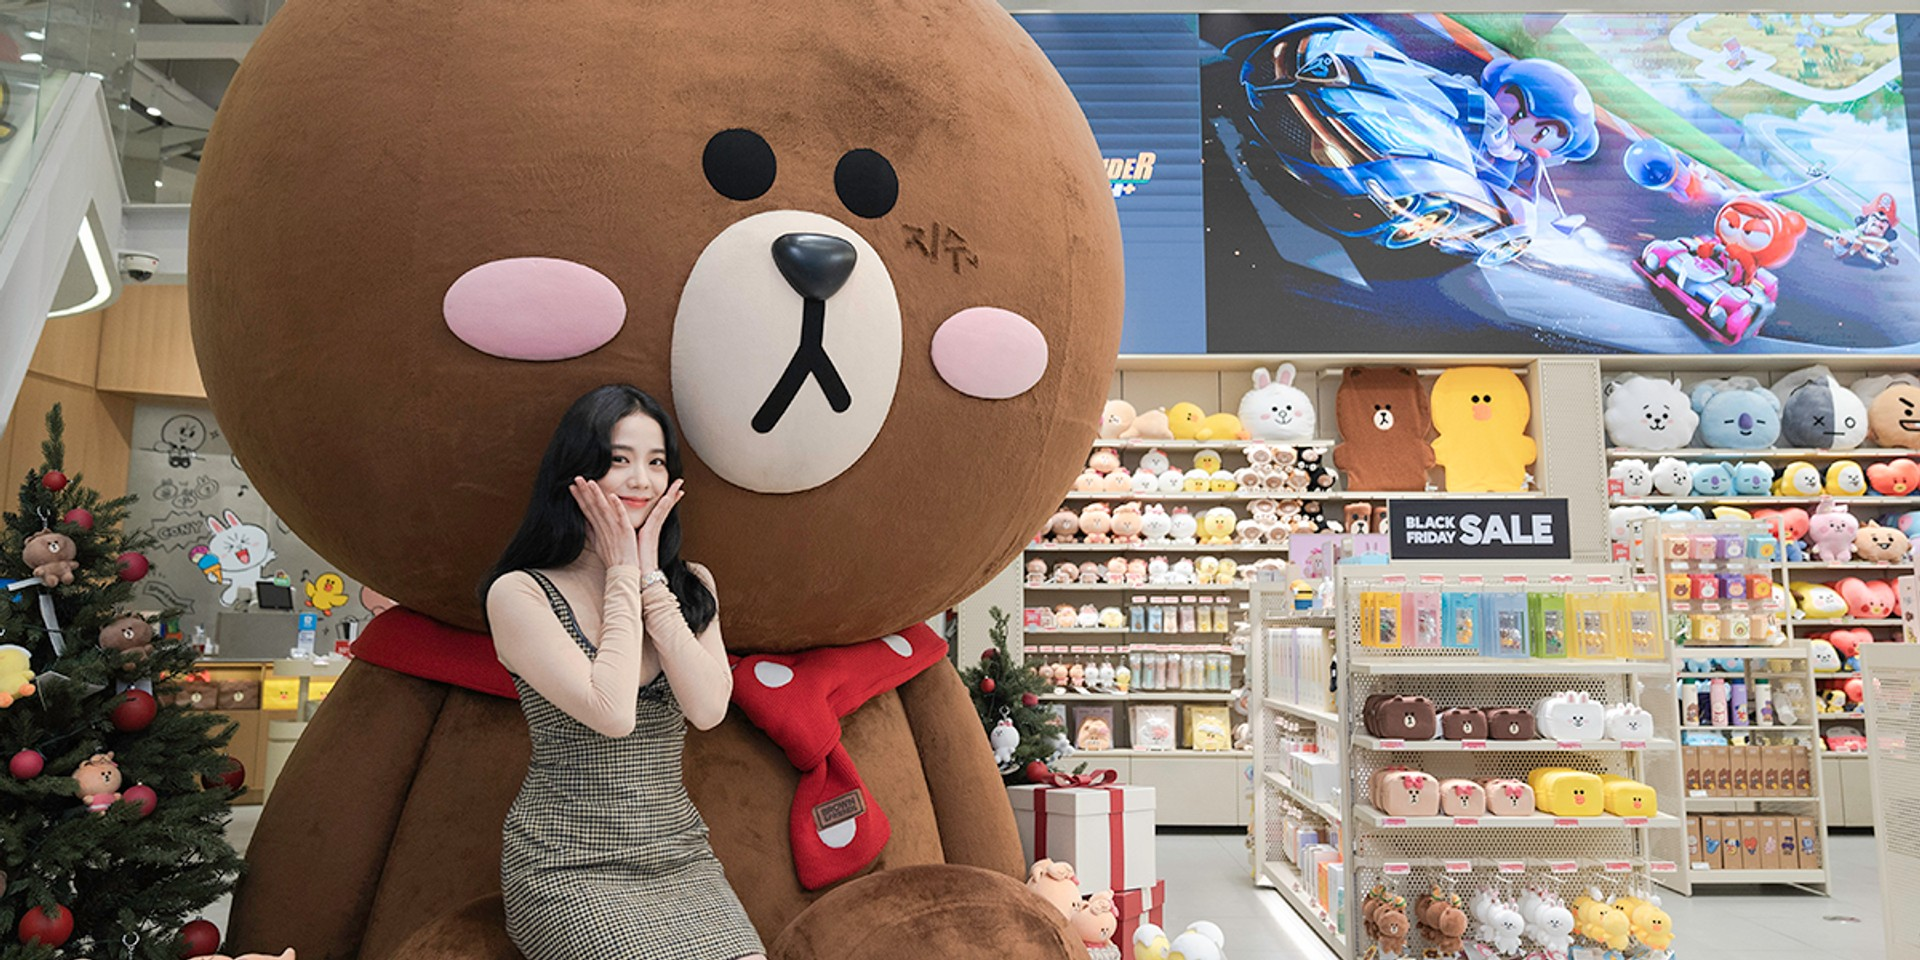 LINE FRIENDS launches new character, 'CHICHI' co-created by BLACKPINK's Jisoo on KartRider Rush+